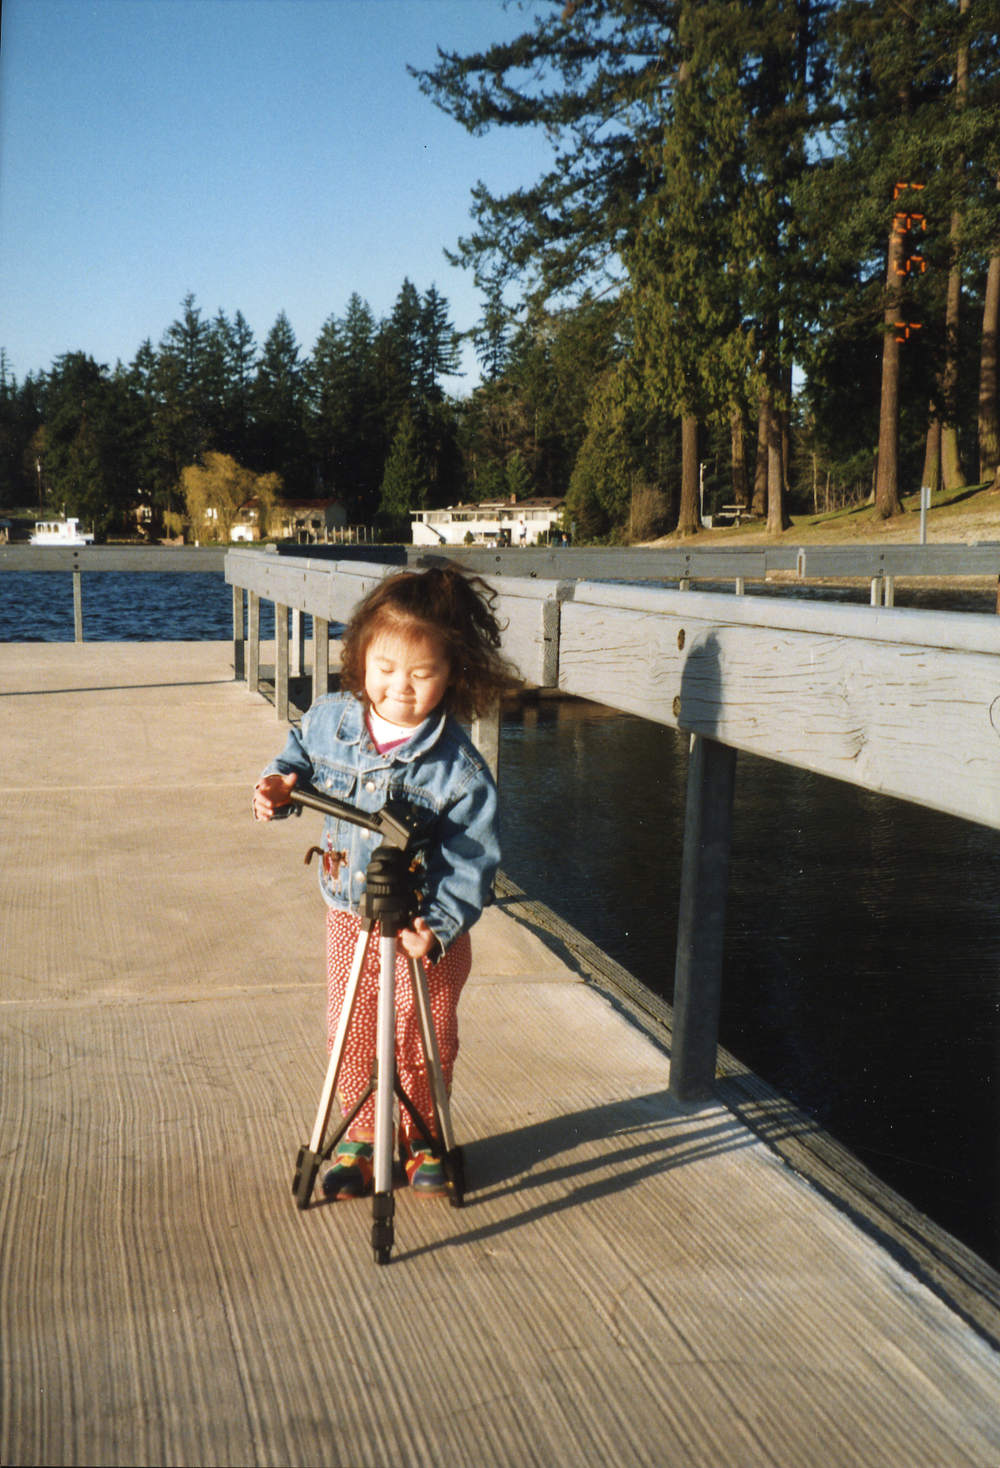 Here's Little Shirley setting up the tripod for Dad circa 1997. I'm a little taller now, but still willing to take on big tasks. Let's collaborate!